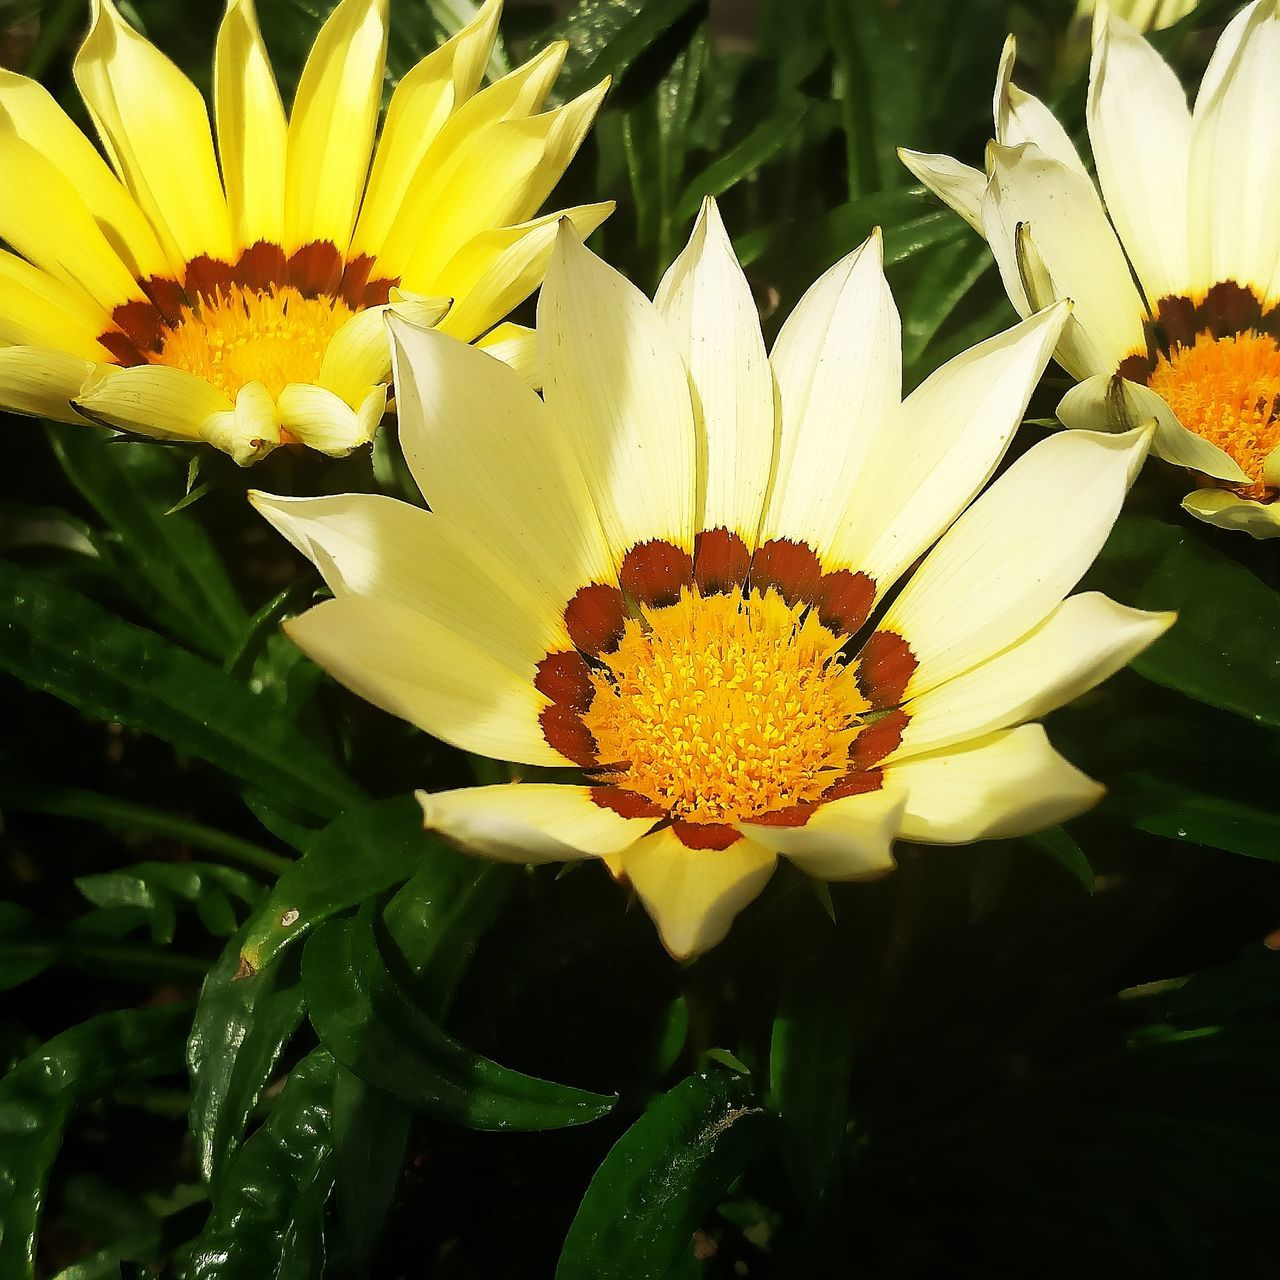 flower, petal, beauty in nature, flower head, nature, freshness, growth, fragility, yellow, plant, pollen, gazania, no people, leaf, outdoors, blooming, close-up, day